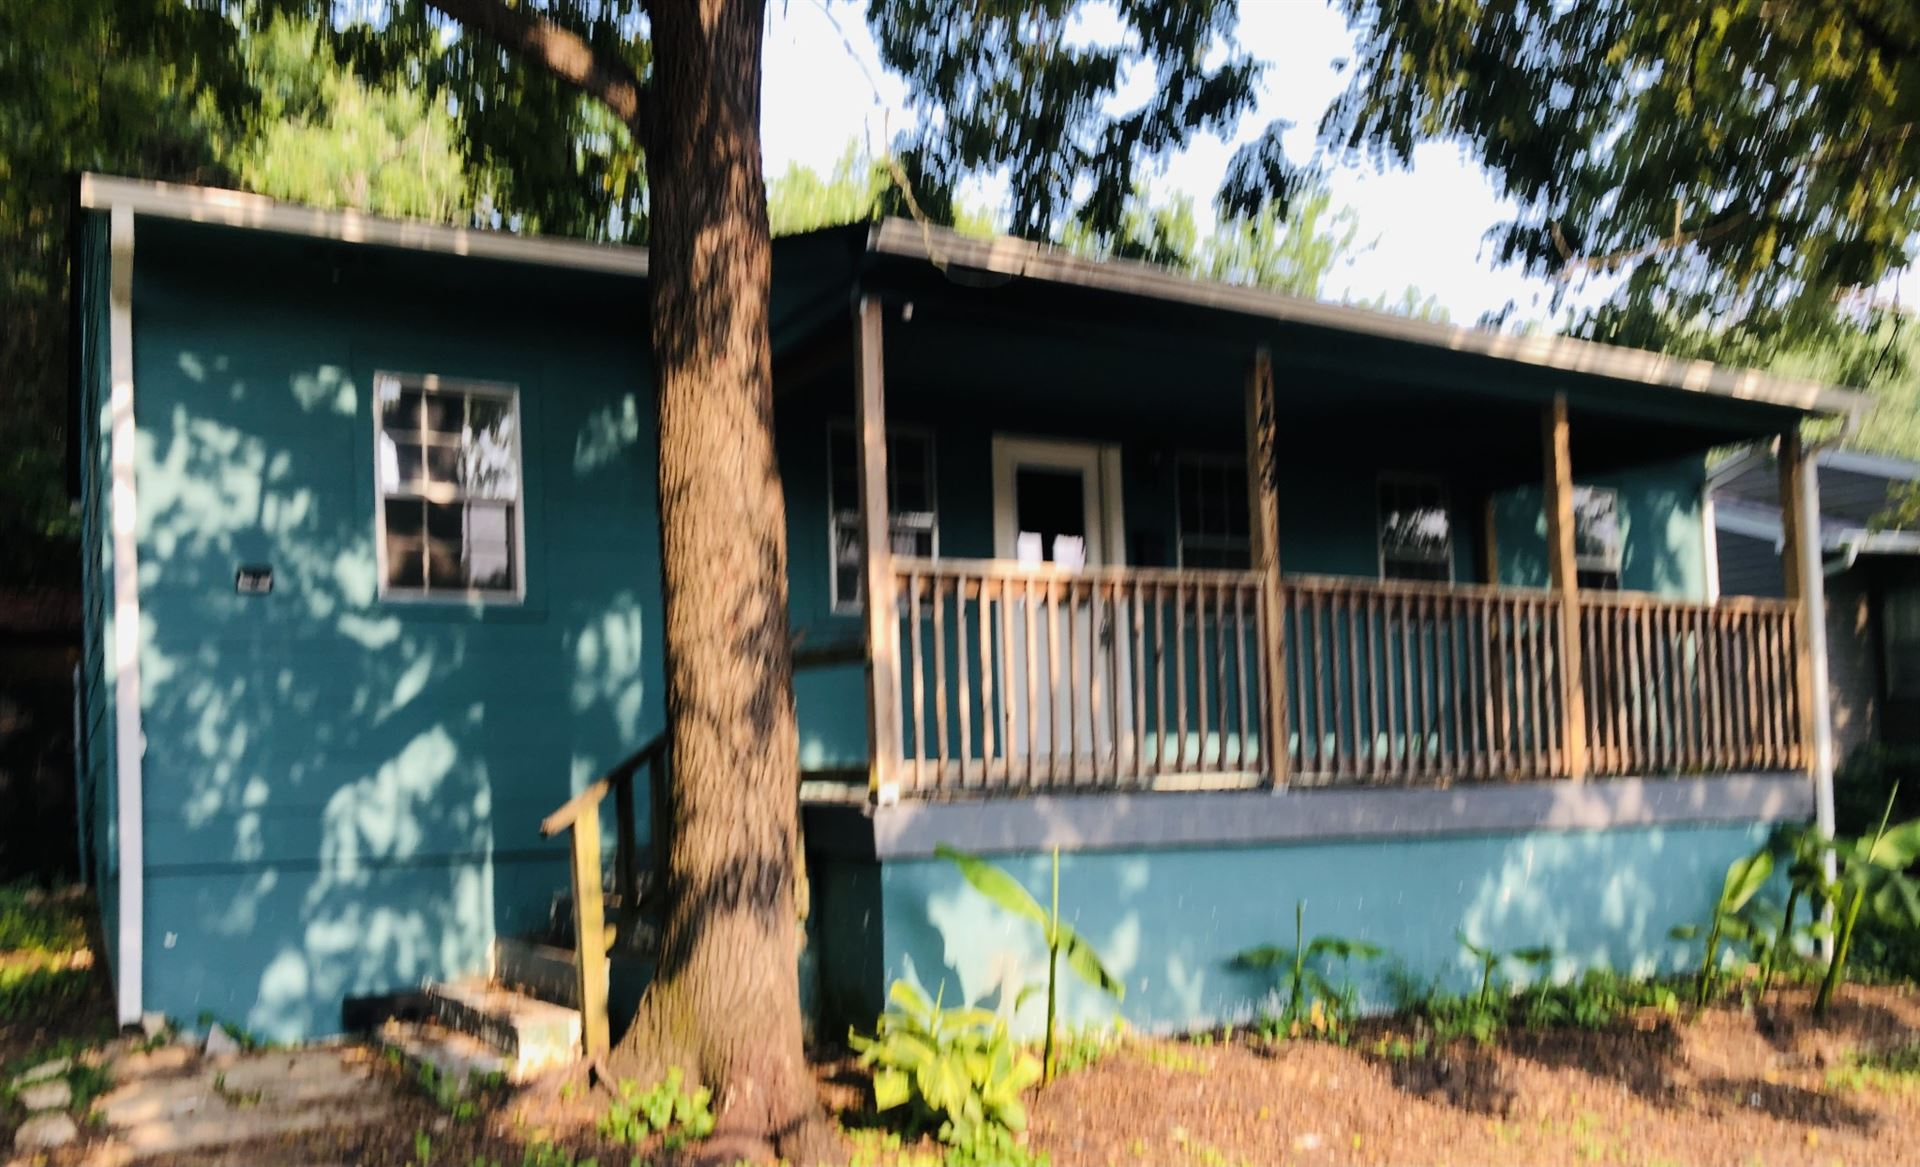 1409 Debow St, Old Hickory, TN 37138 - MLS#: 2277246